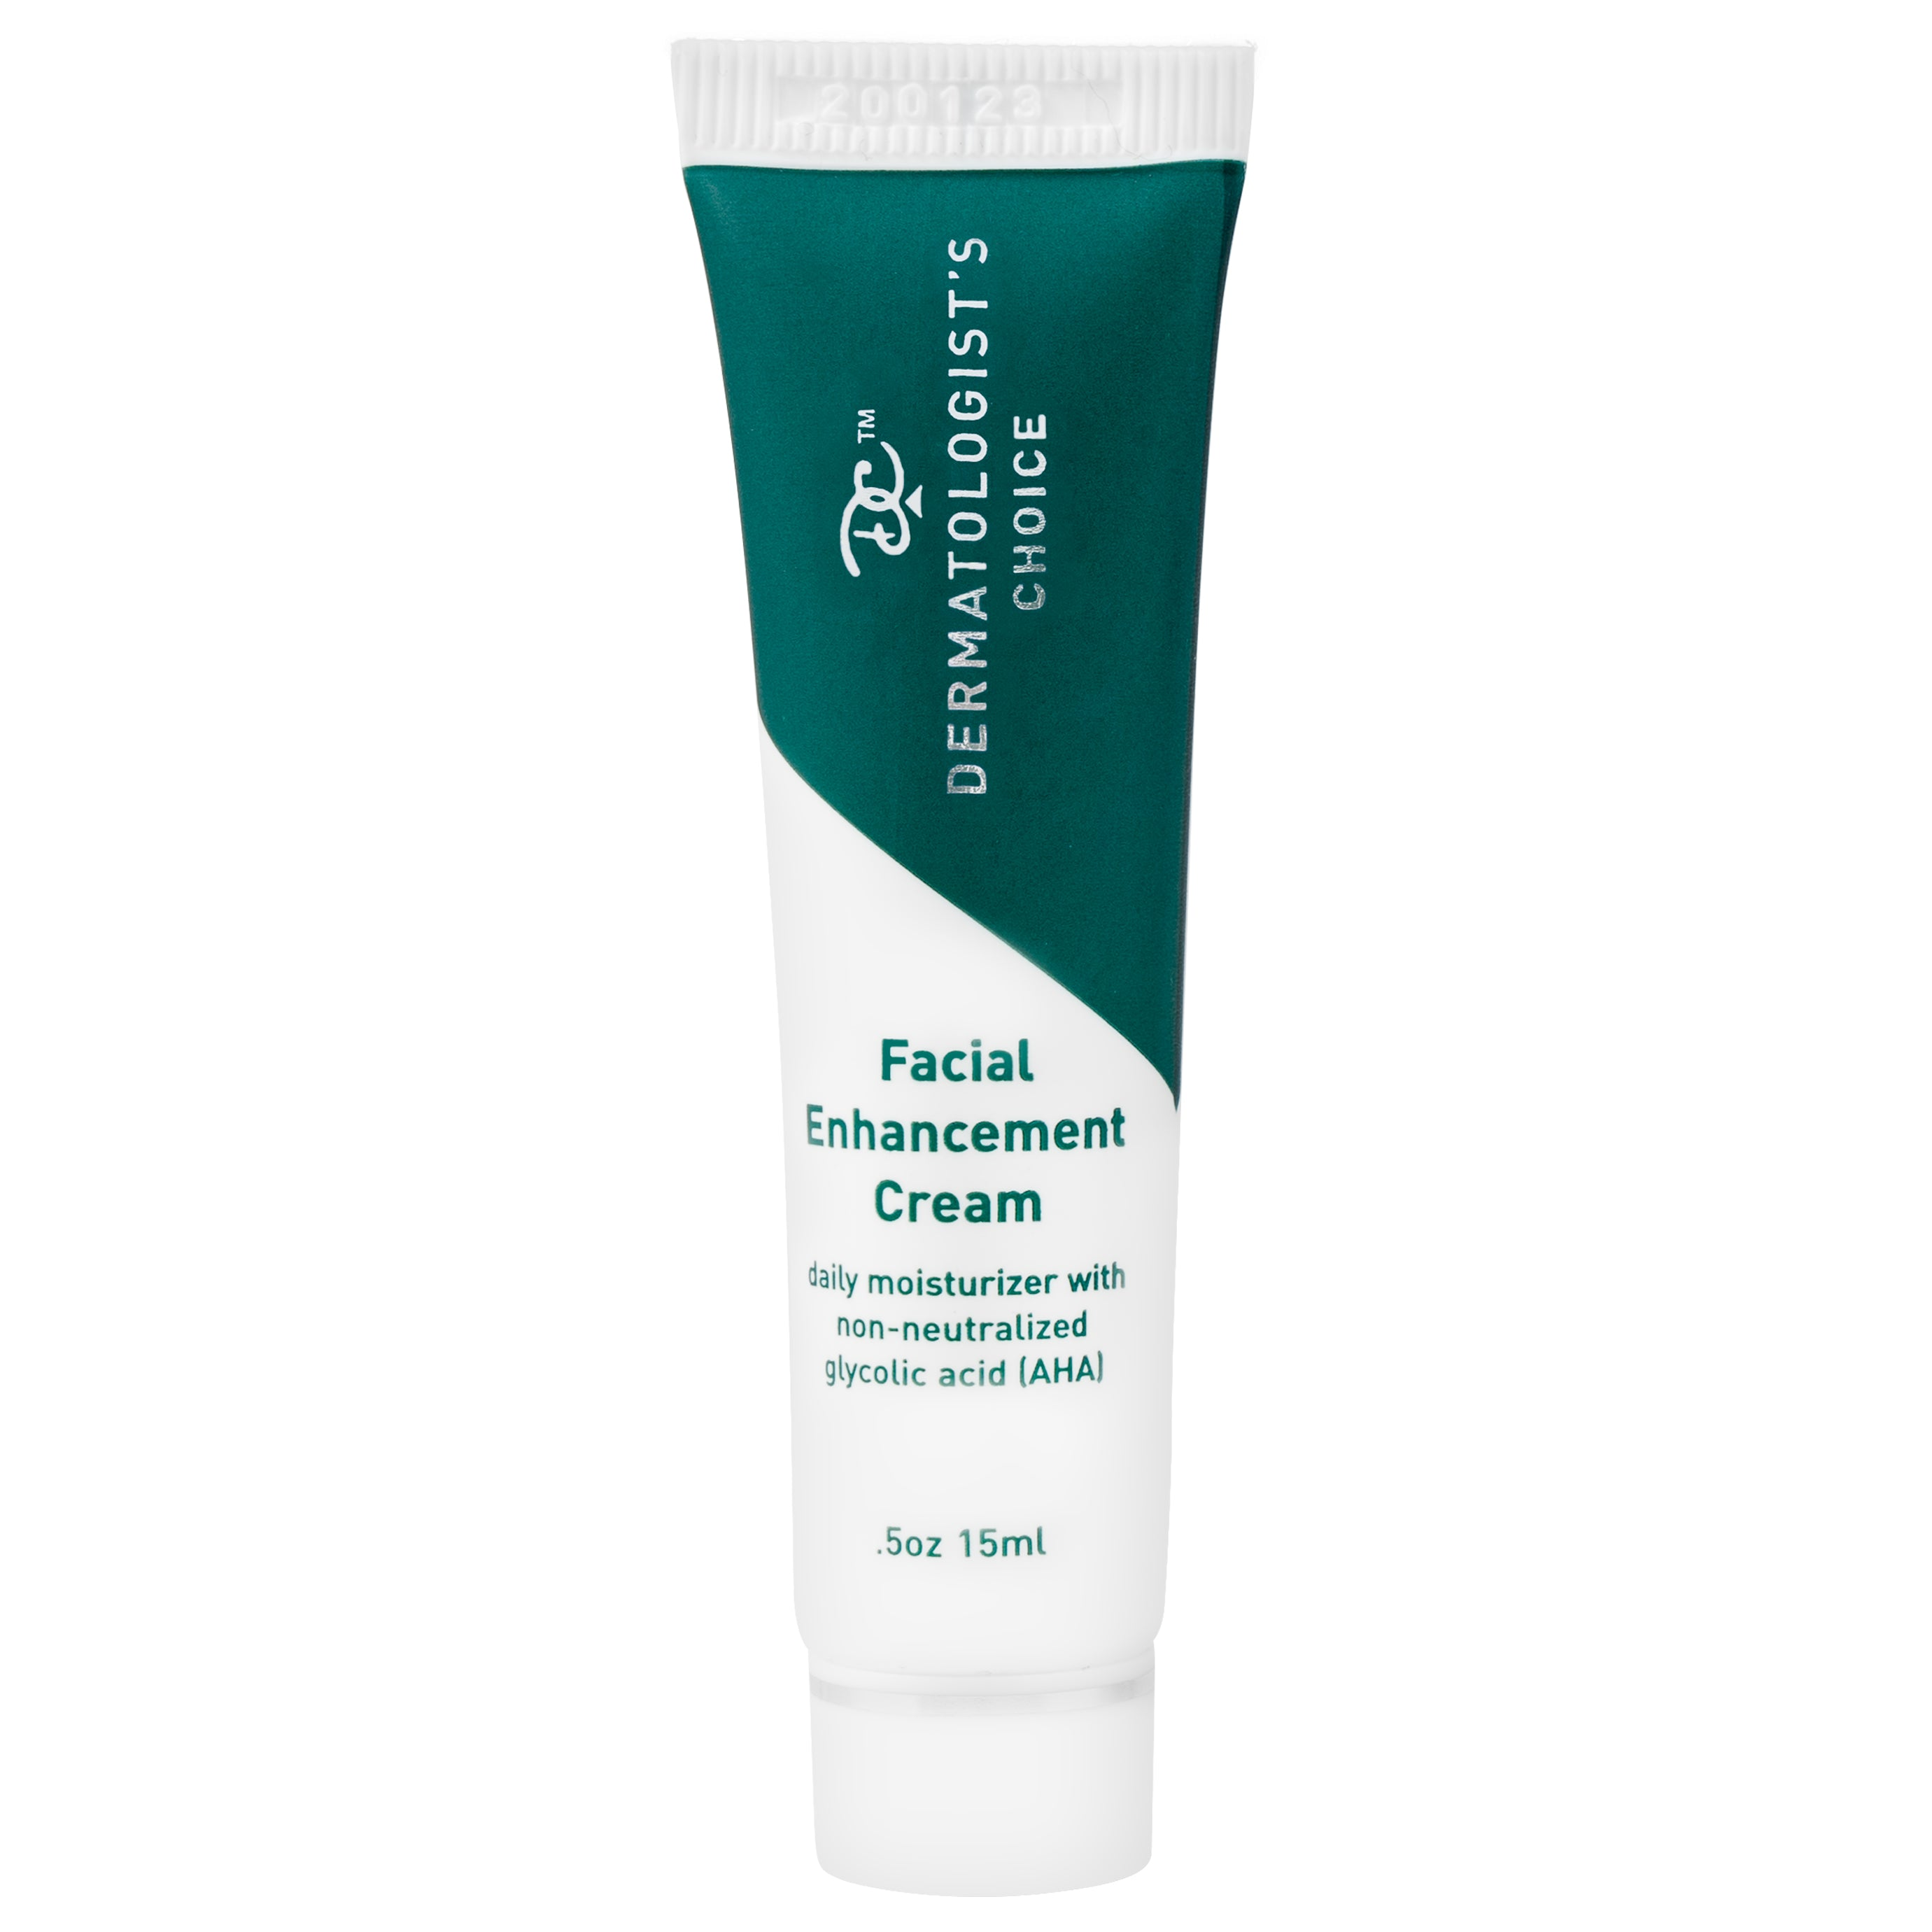 Facial Enhancement Cream Travel Size